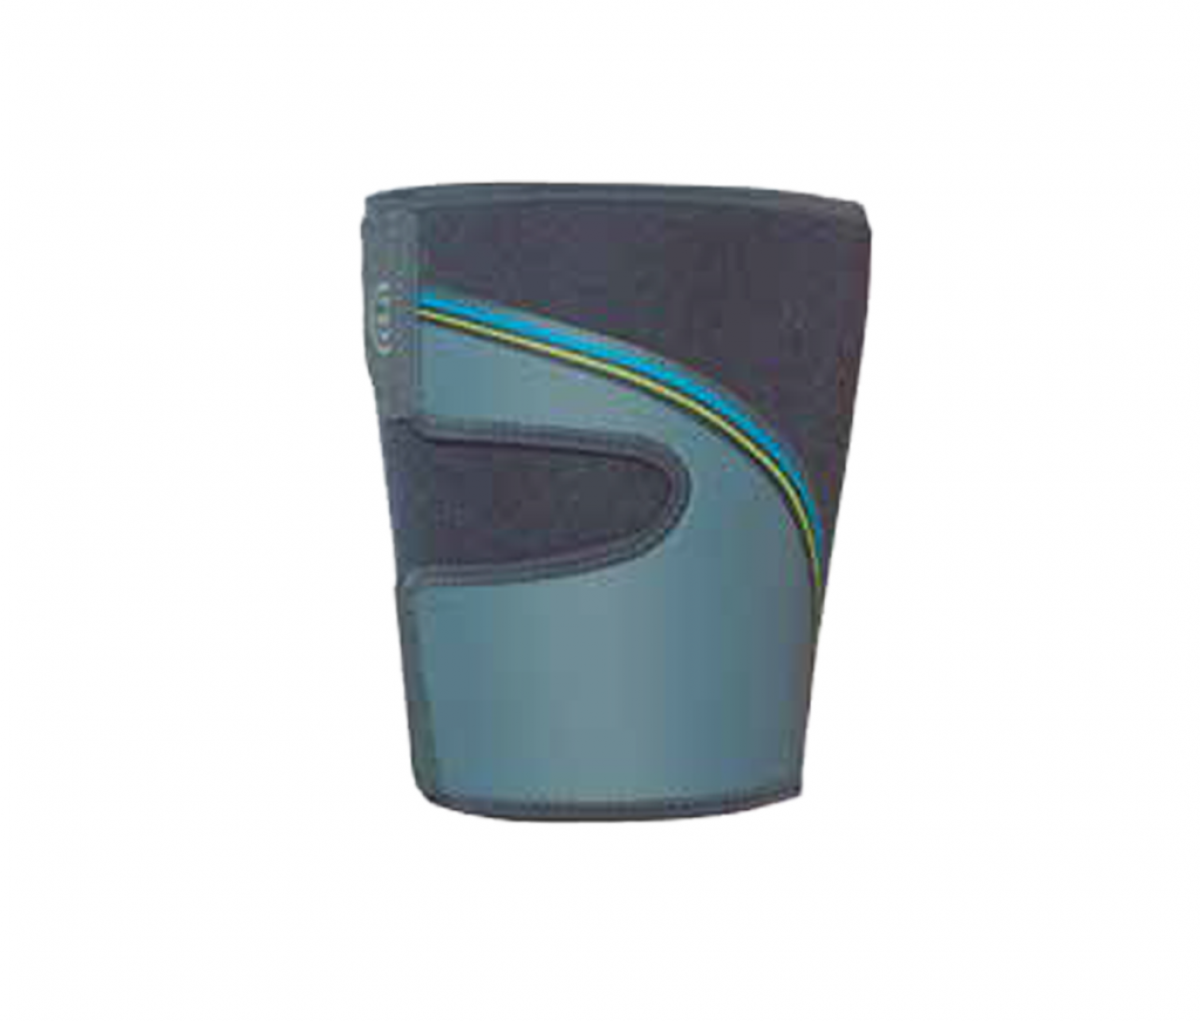 THIGH SUPPORT - Free Size NPOS147